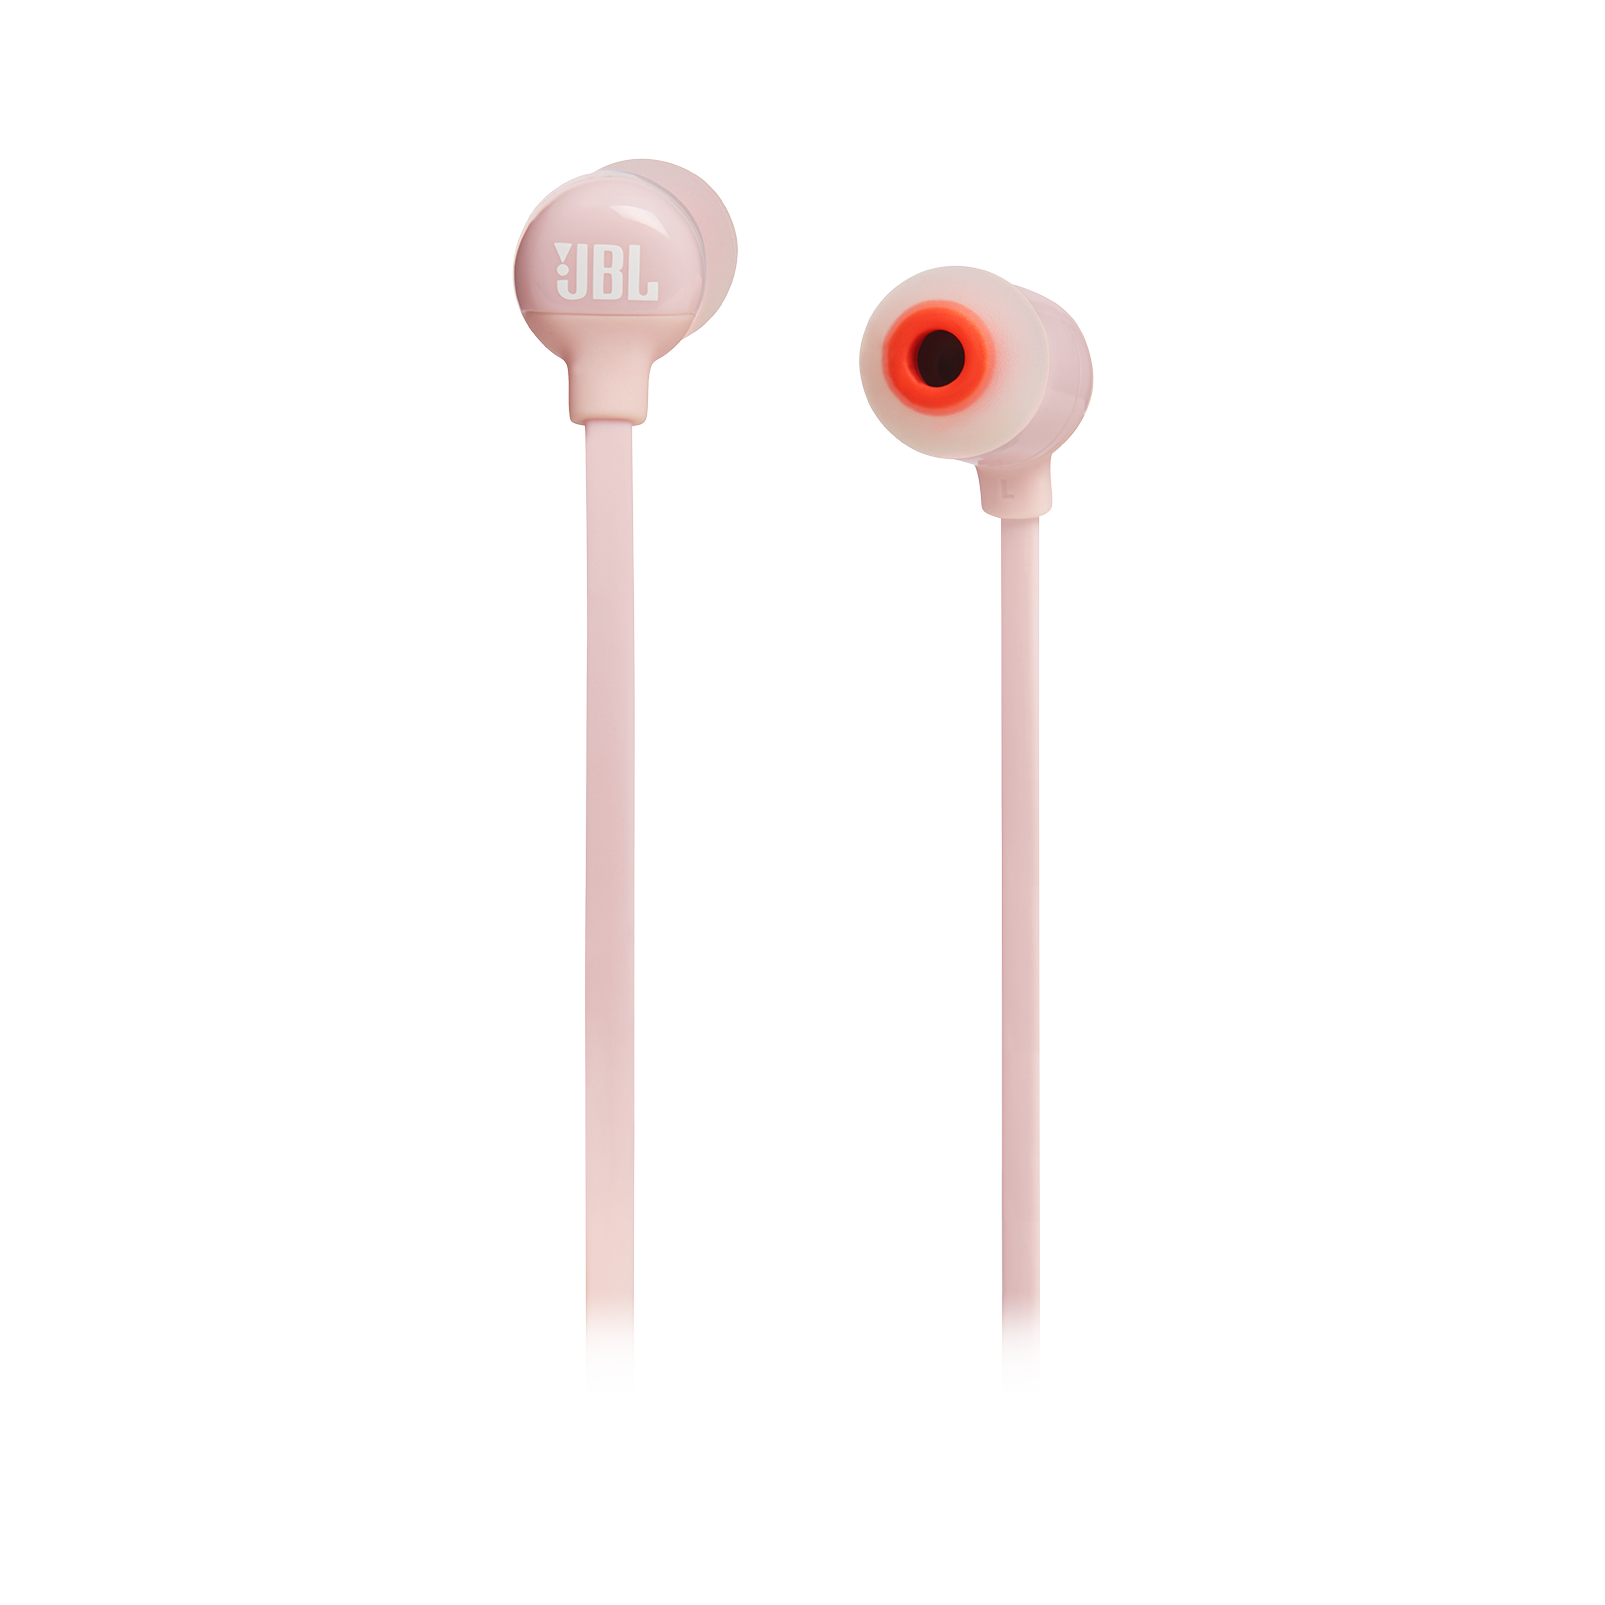 JBL TUNE 110BT - Pink - Wireless in-ear headphones - Detailshot 3